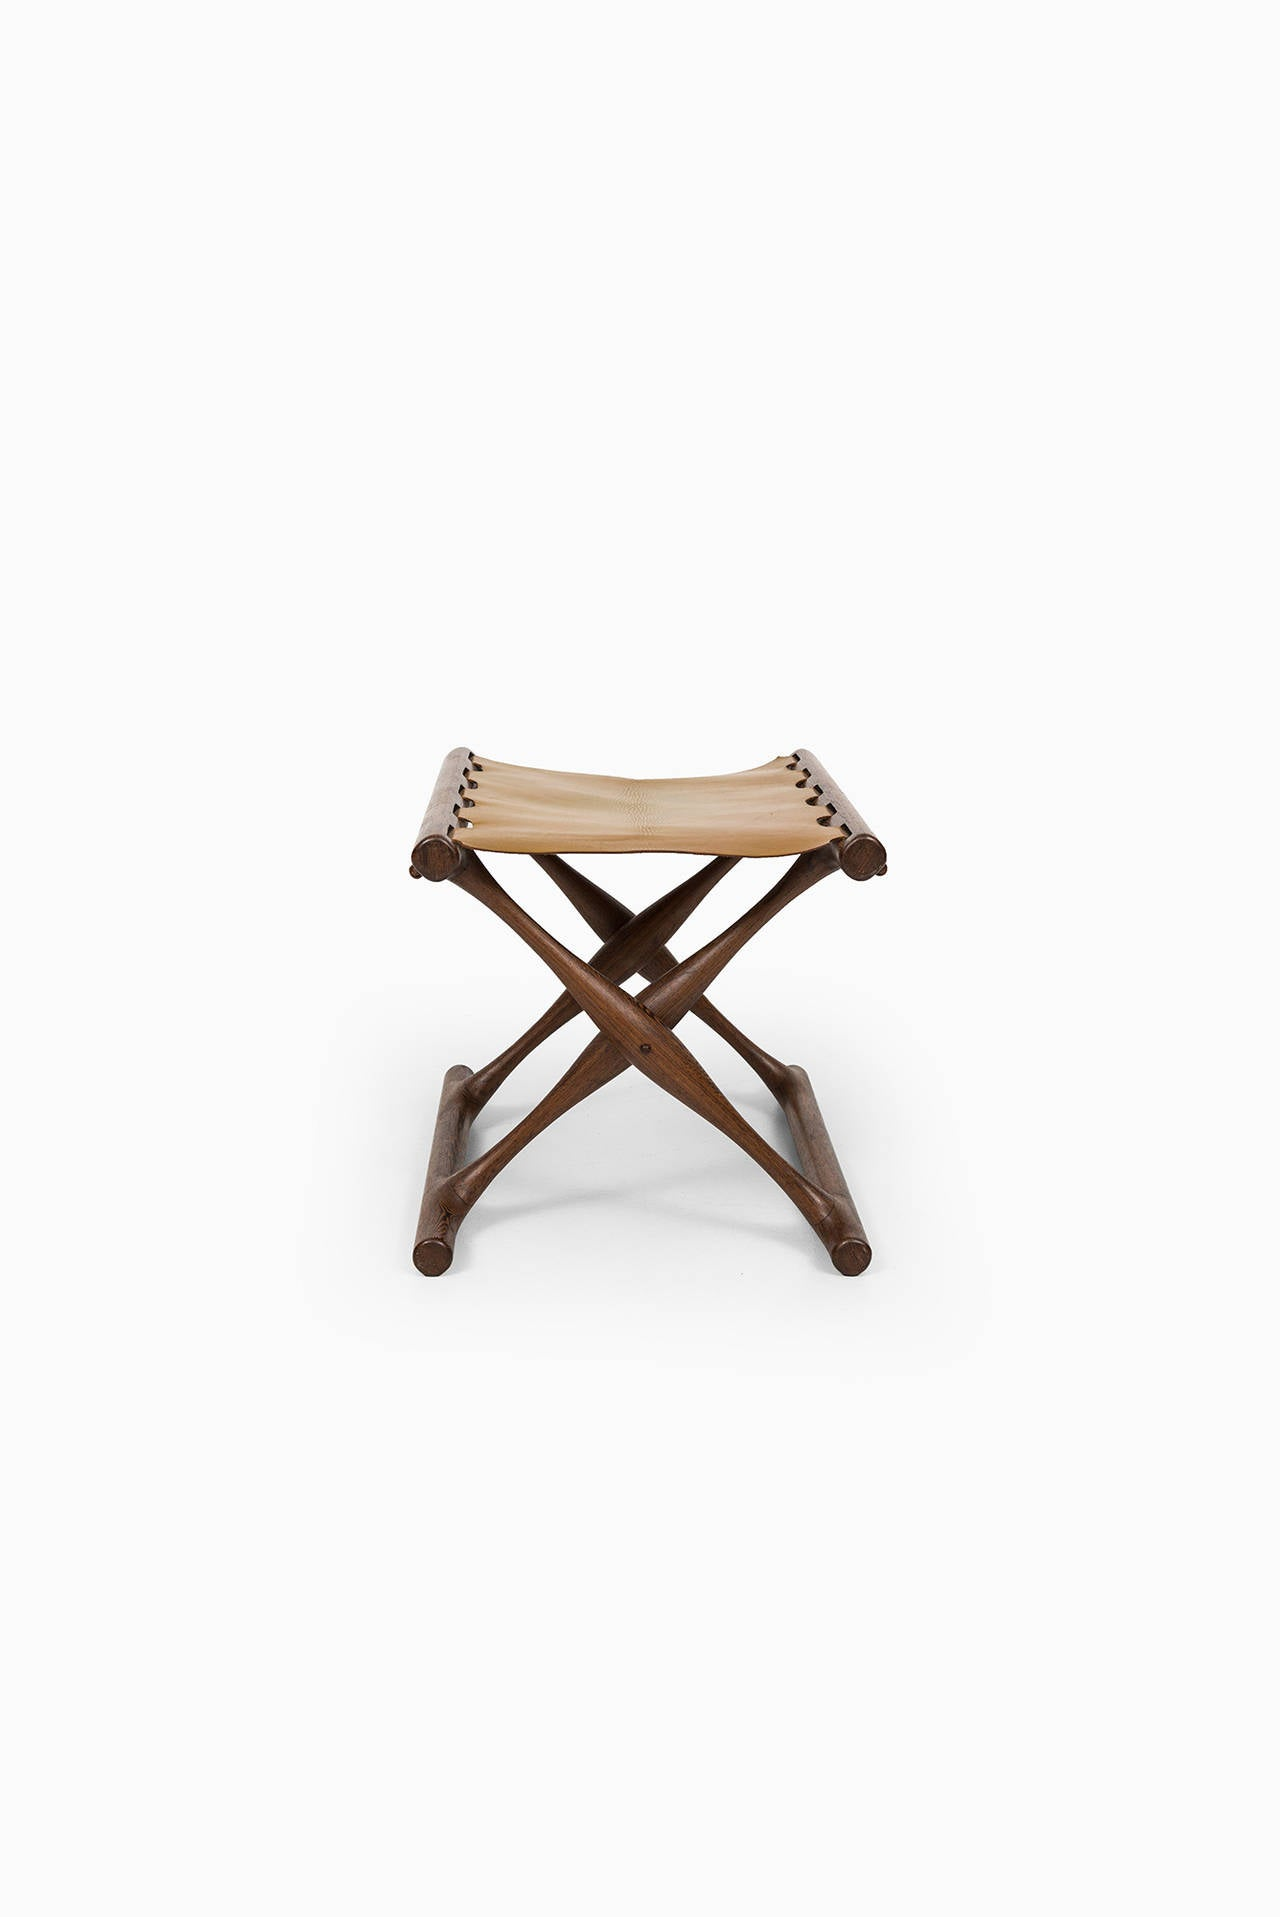 Danish Poul Hundevad Stool, Model Guldhøj (PH 43) in Wengé and Olive Leather For Sale